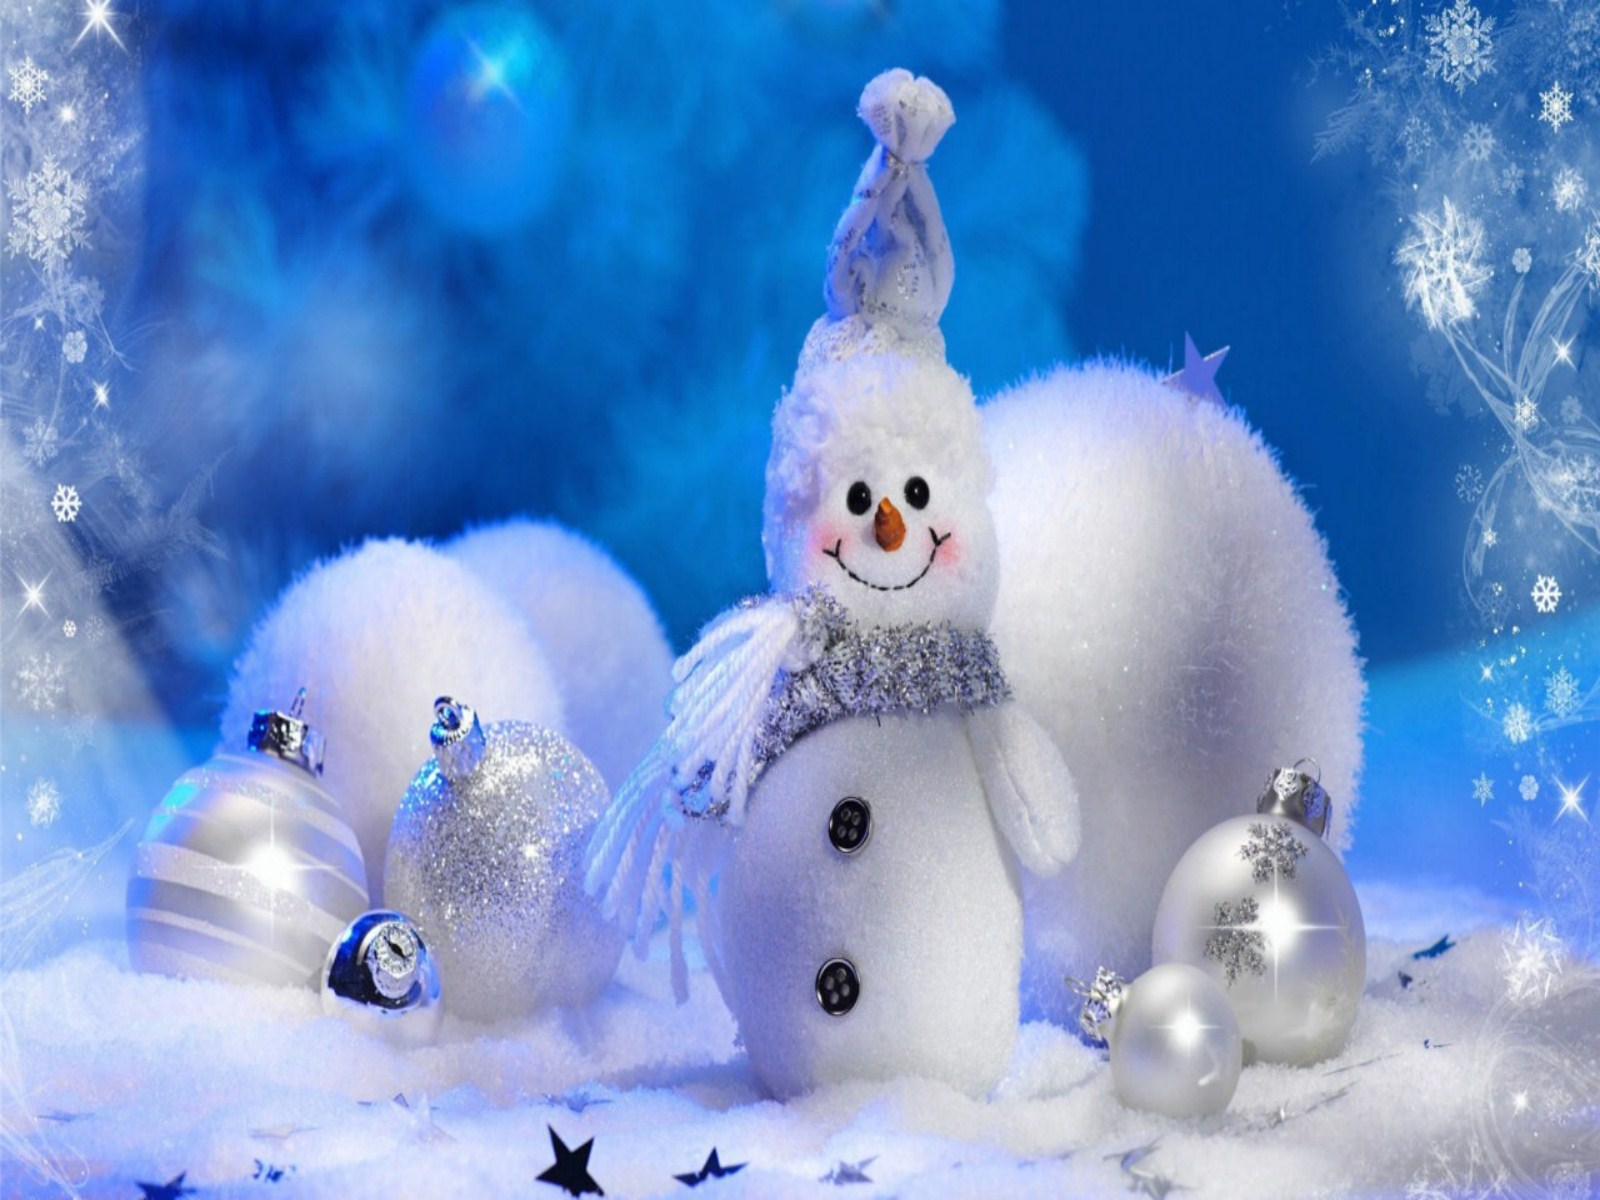 Wallpaper Cute Christmas Wallpapers Best Santa Waiting 1600x1200